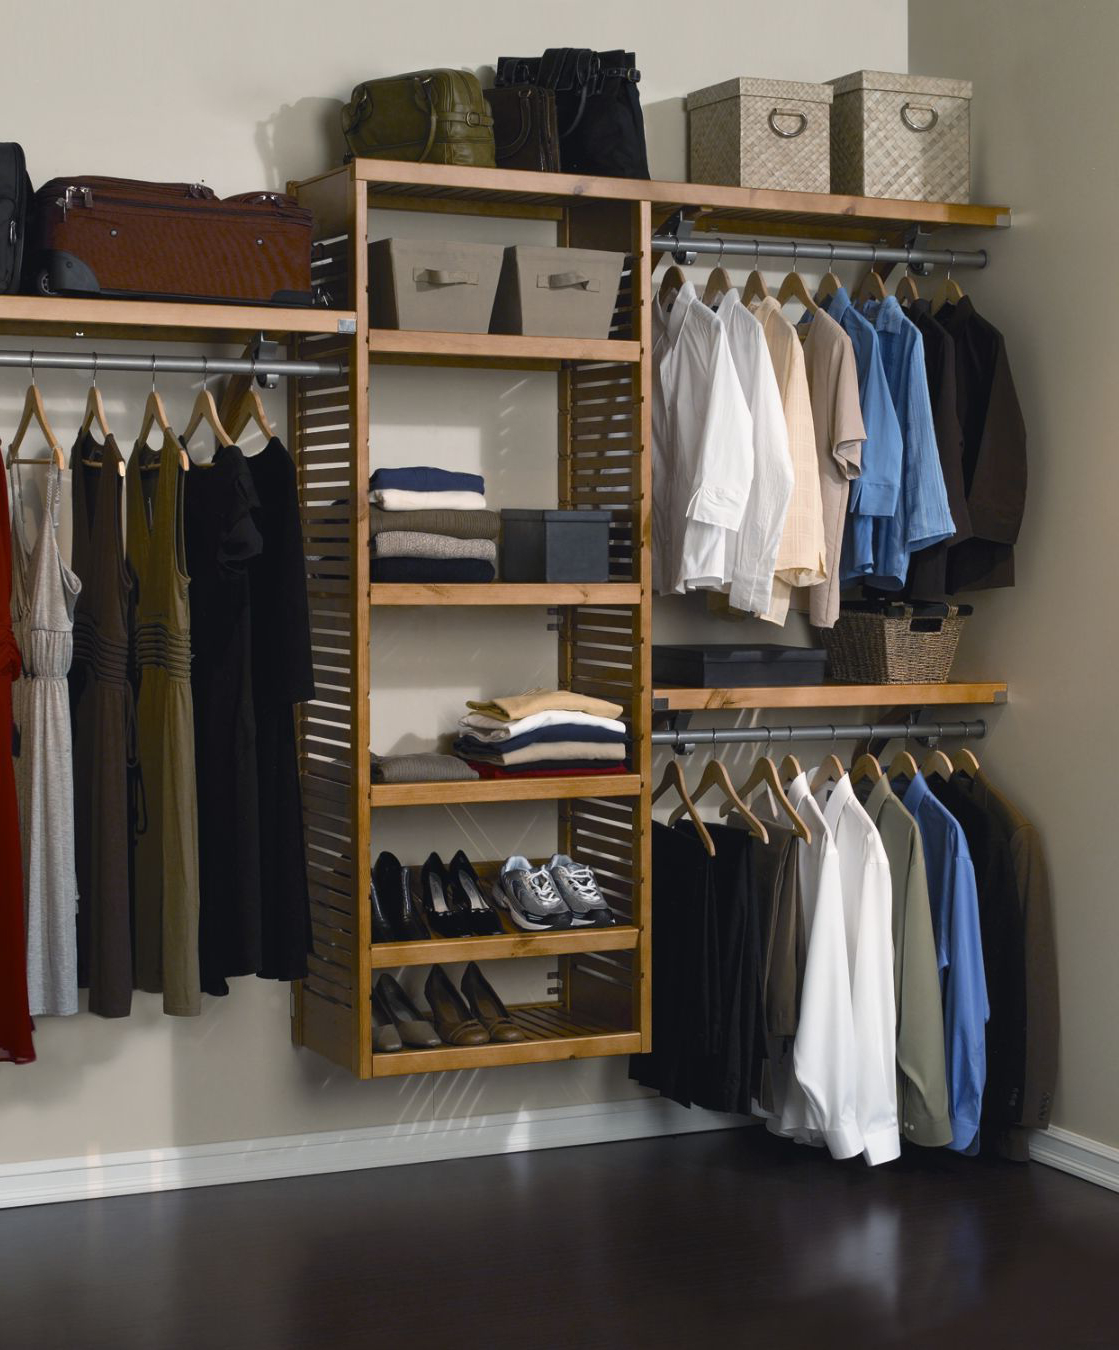 Wonderful image of Latest Closet Shelving Ideas 2014 #23 House Decor Tips with #415F8A color and 1119x1350 pixels